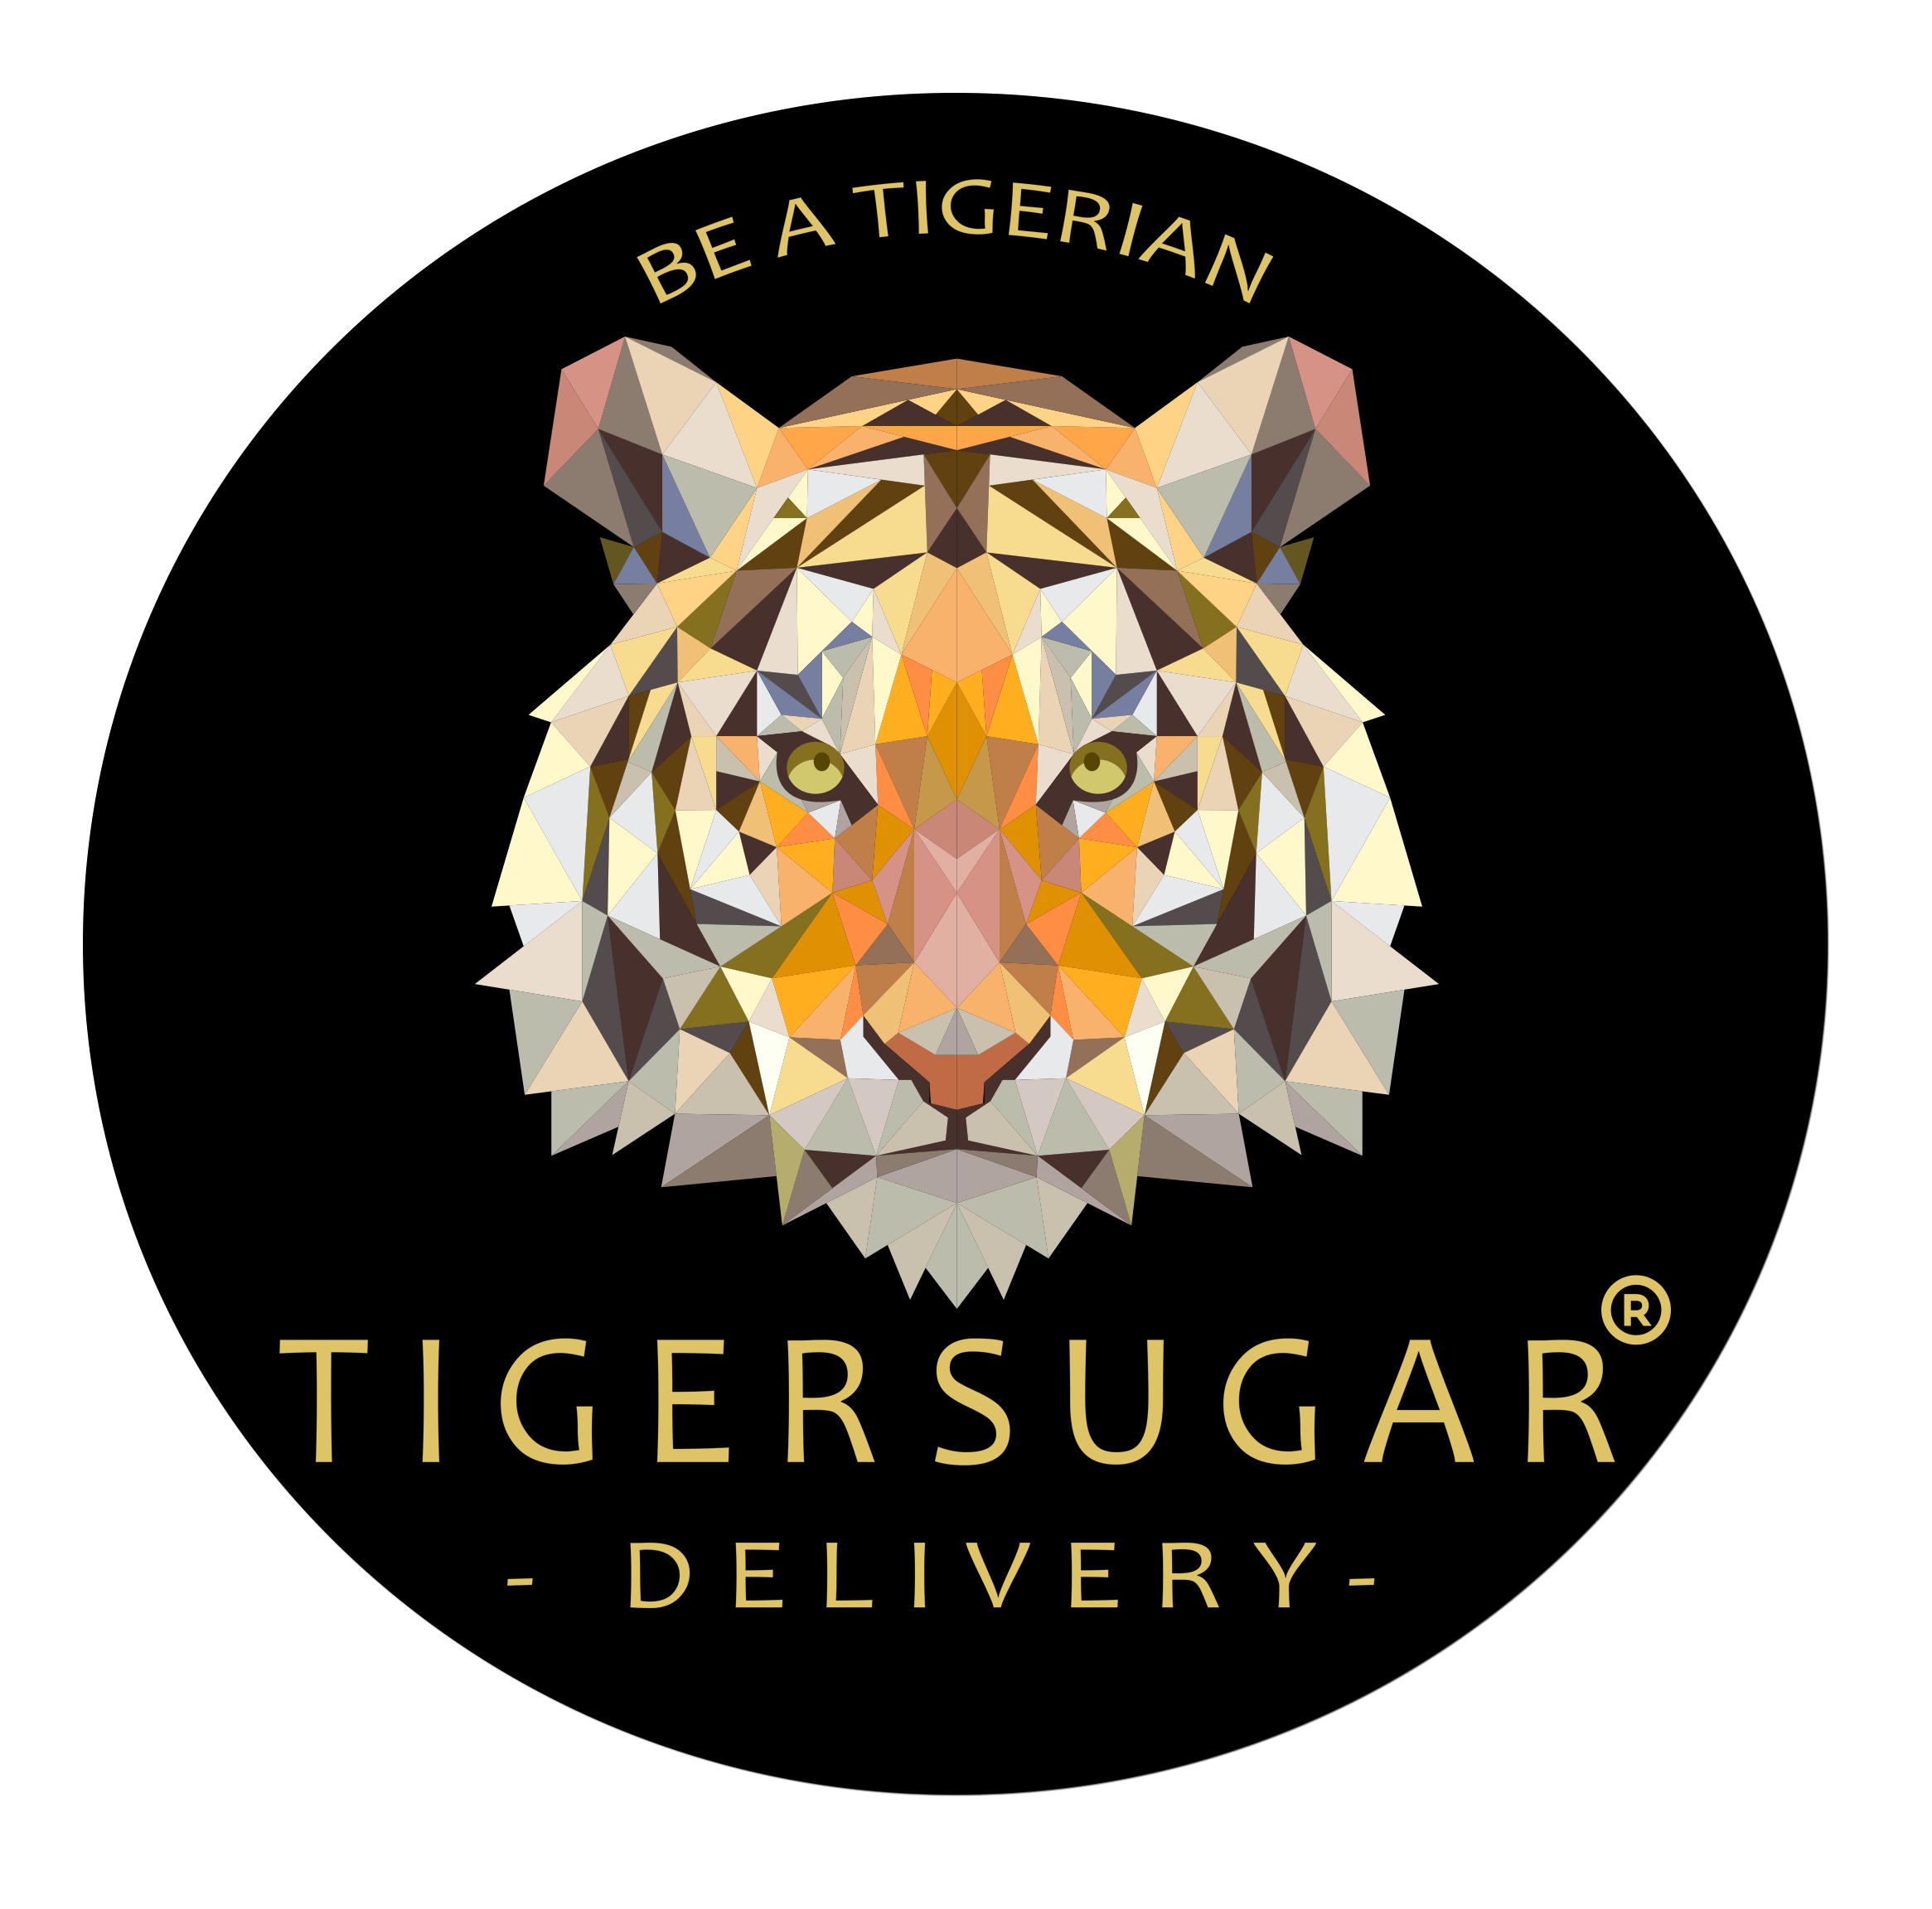 Tiger Sugar Delivery